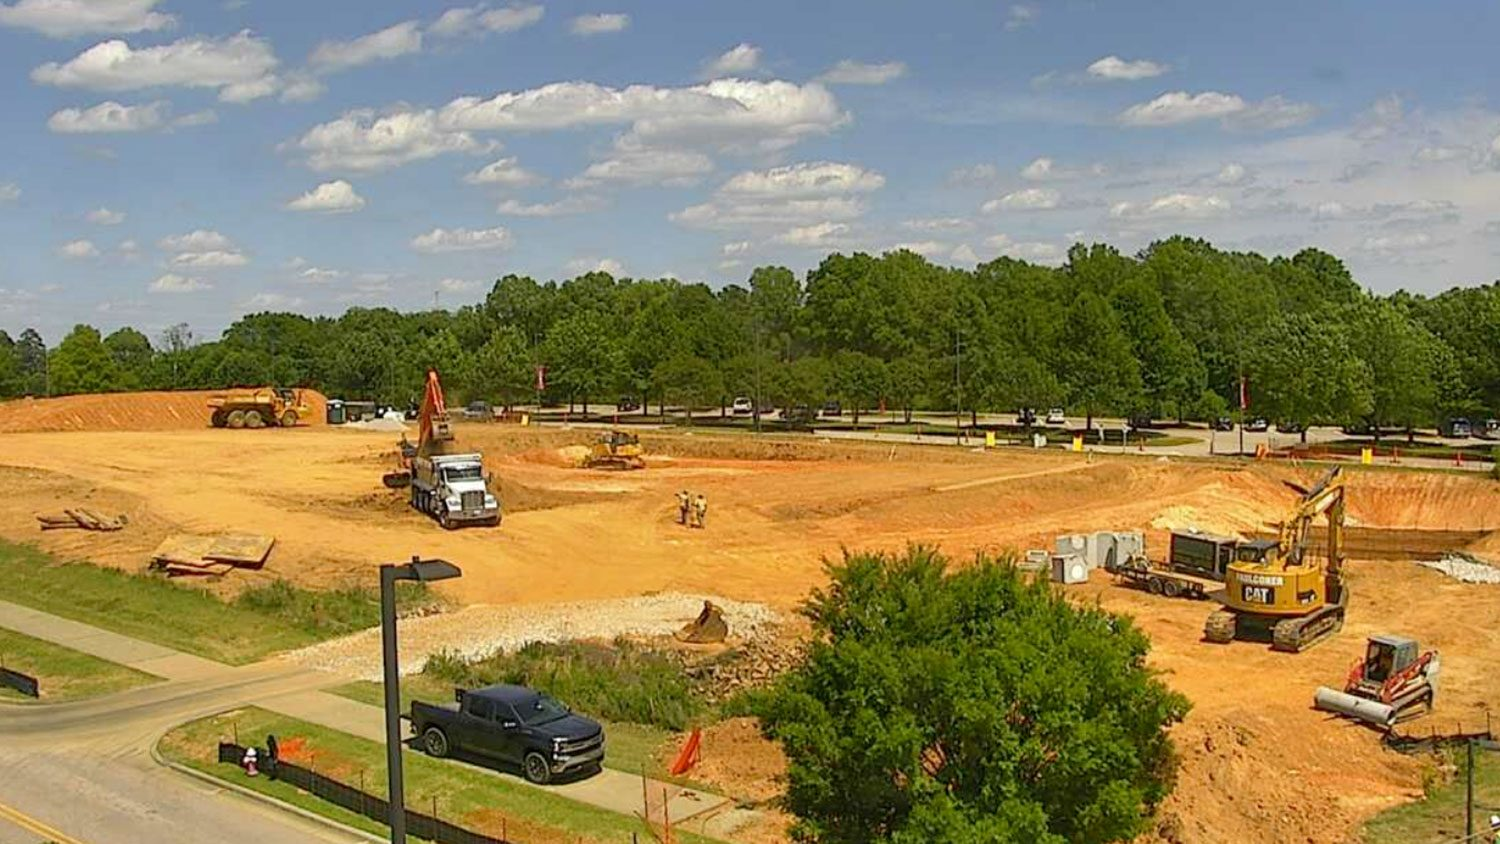 Plant Sciences under construction site May 16, 2019